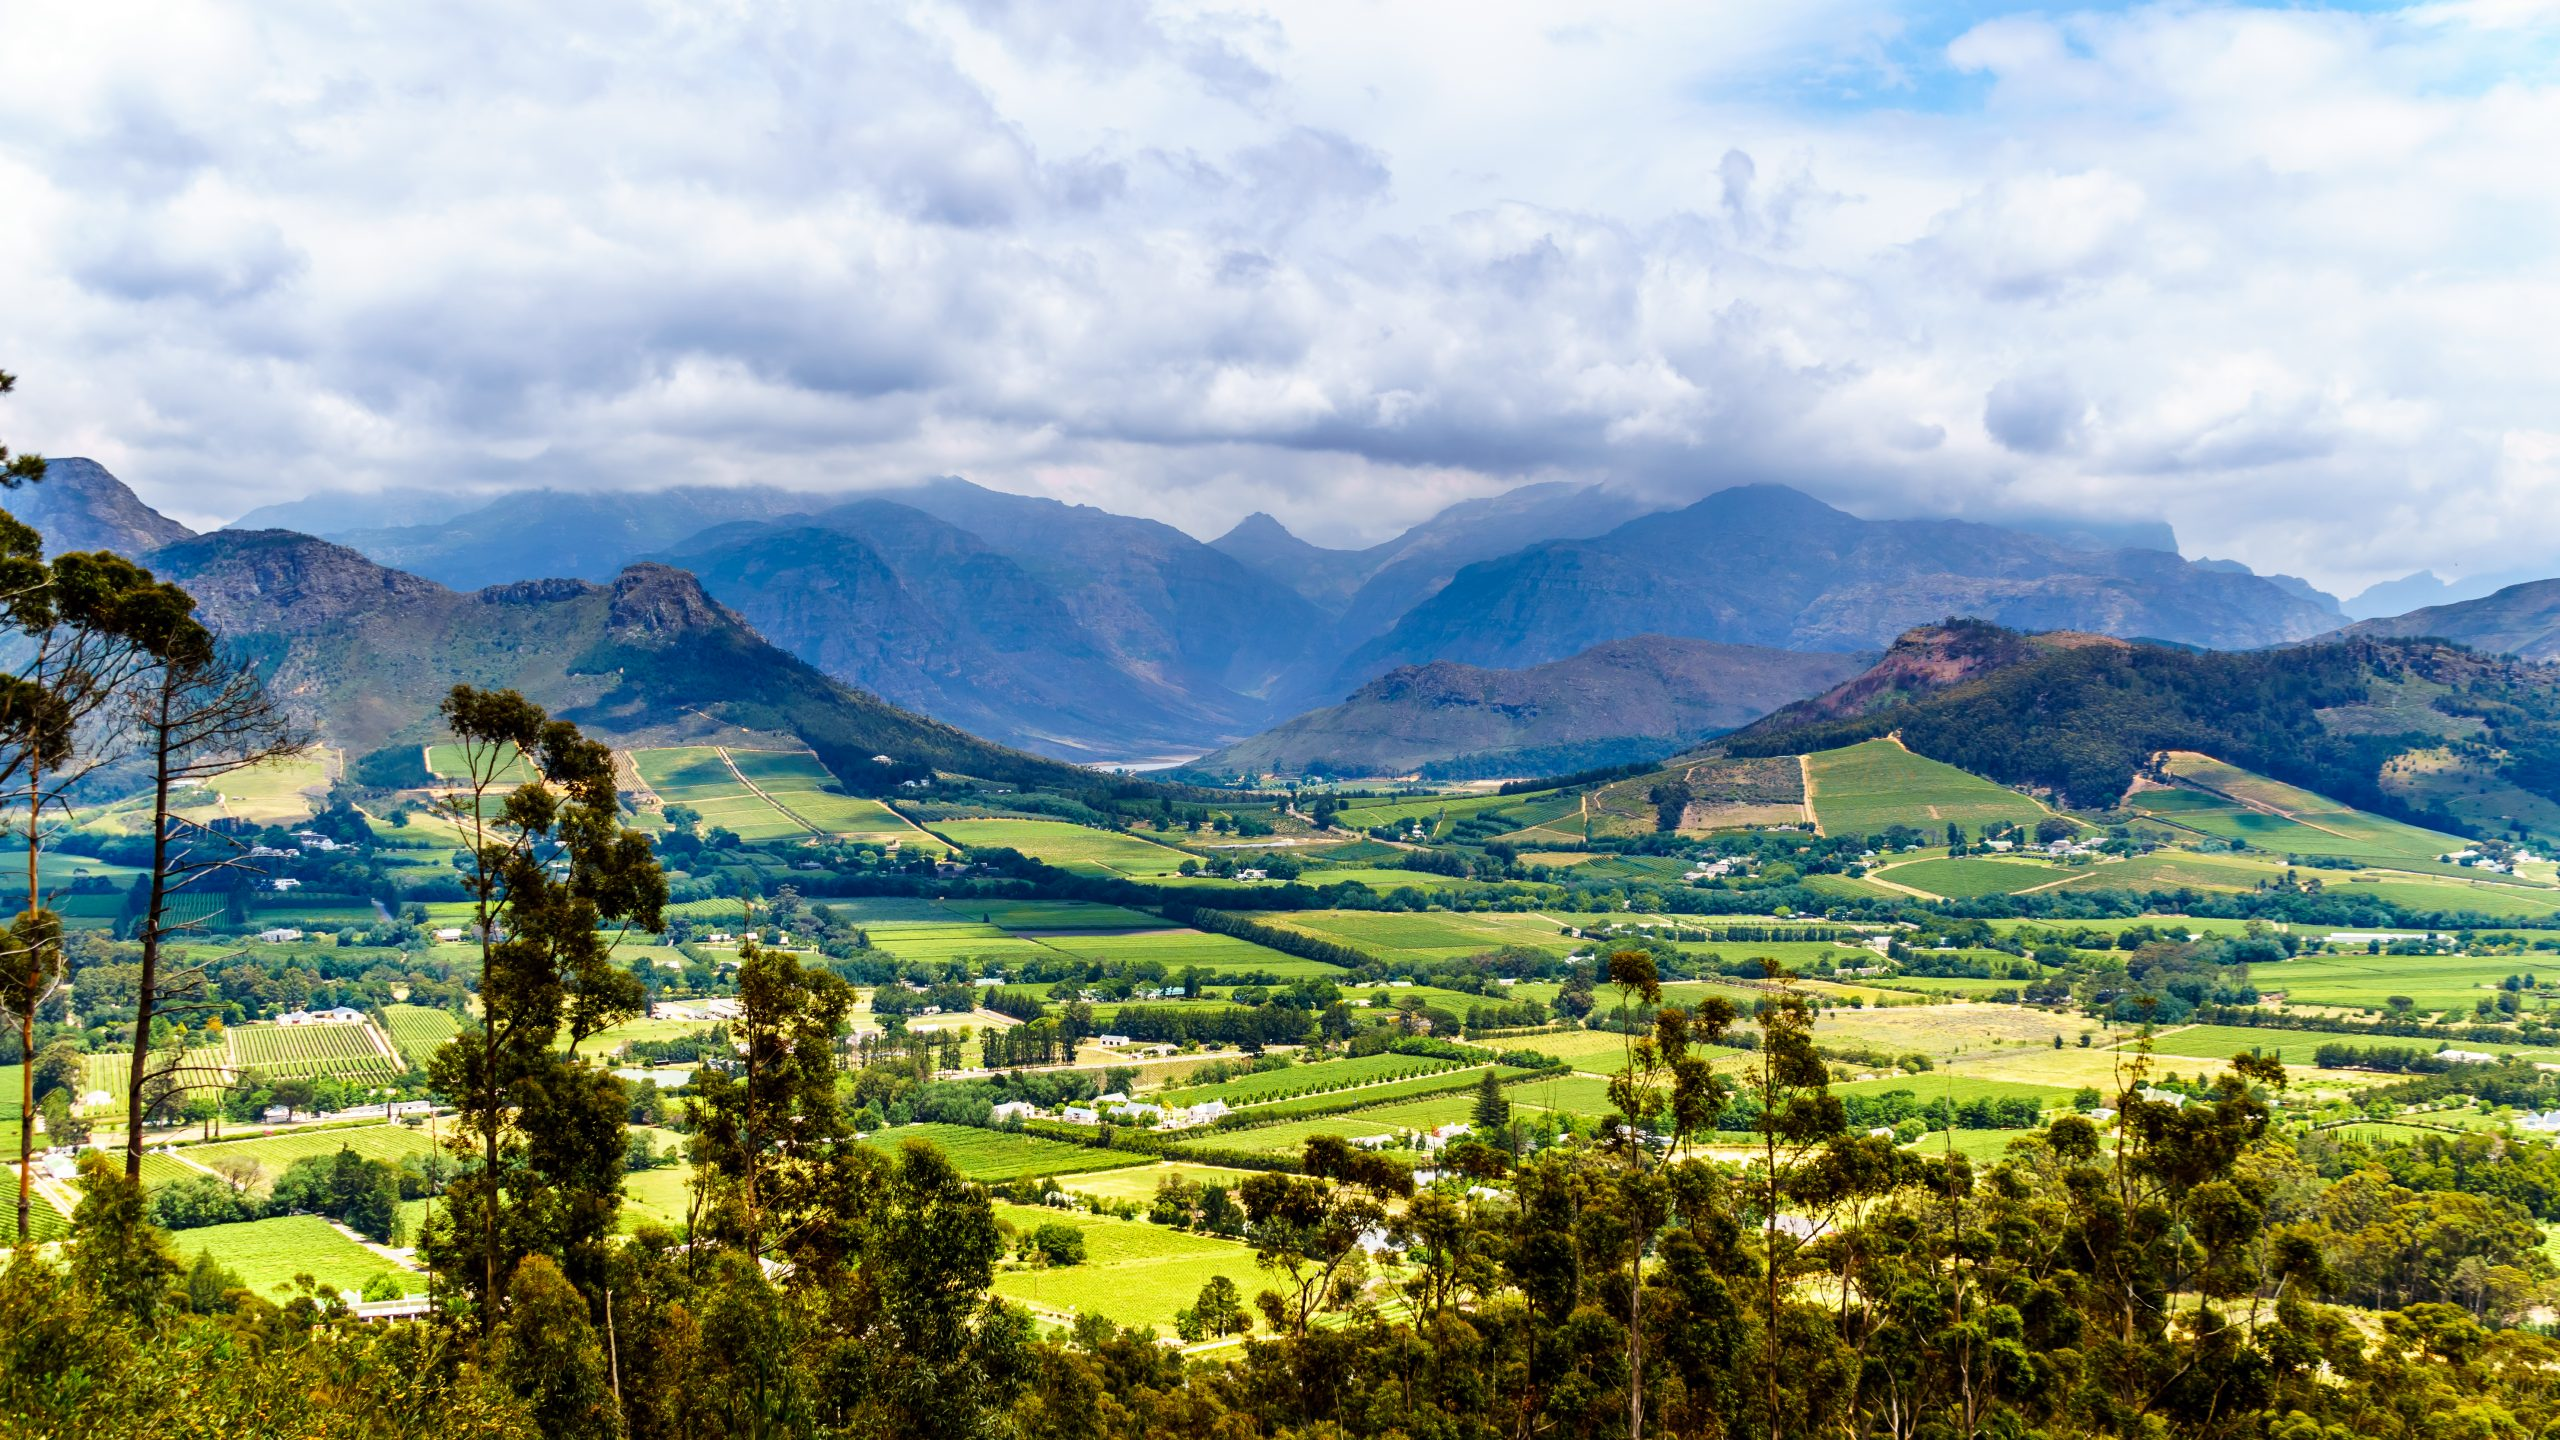 Franschhoek Valley in the Western Cape of South Africa